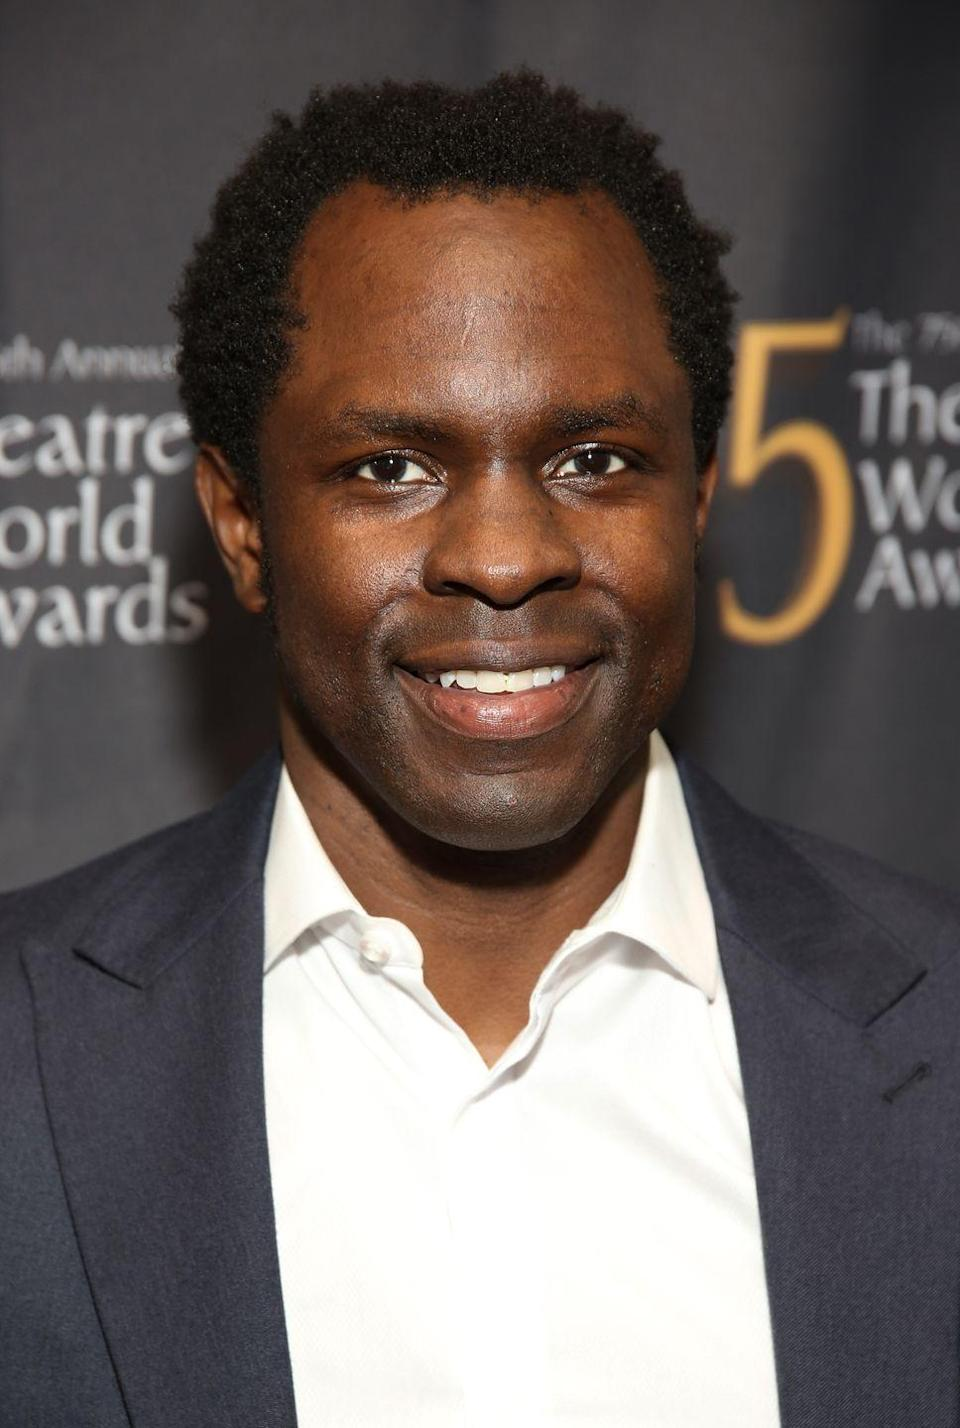 """<p>In addition to roles on series like <em>The Deuce</em>, <em>Limitless</em>, <em>The Good Wife</em>, <em>Damages</em>, <em>24: Live Another Day,</em> and <em>Graceland</em>, Akinnagbe is an entrepreneur and an activist. He has a clothing line called <a href=""""https://www.weareliberated.com/"""" rel=""""nofollow noopener"""" target=""""_blank"""" data-ylk=""""slk:Liberated People"""" class=""""link rapid-noclick-resp"""">Liberated People</a>, as well as furniture company, <a href=""""http://www.enitanvintage.com/"""" rel=""""nofollow noopener"""" target=""""_blank"""" data-ylk=""""slk:Enitan Vintage"""" class=""""link rapid-noclick-resp"""">Enitan Vintage</a>, which showcases African fabrics on refurbished antique pieces.</p>"""